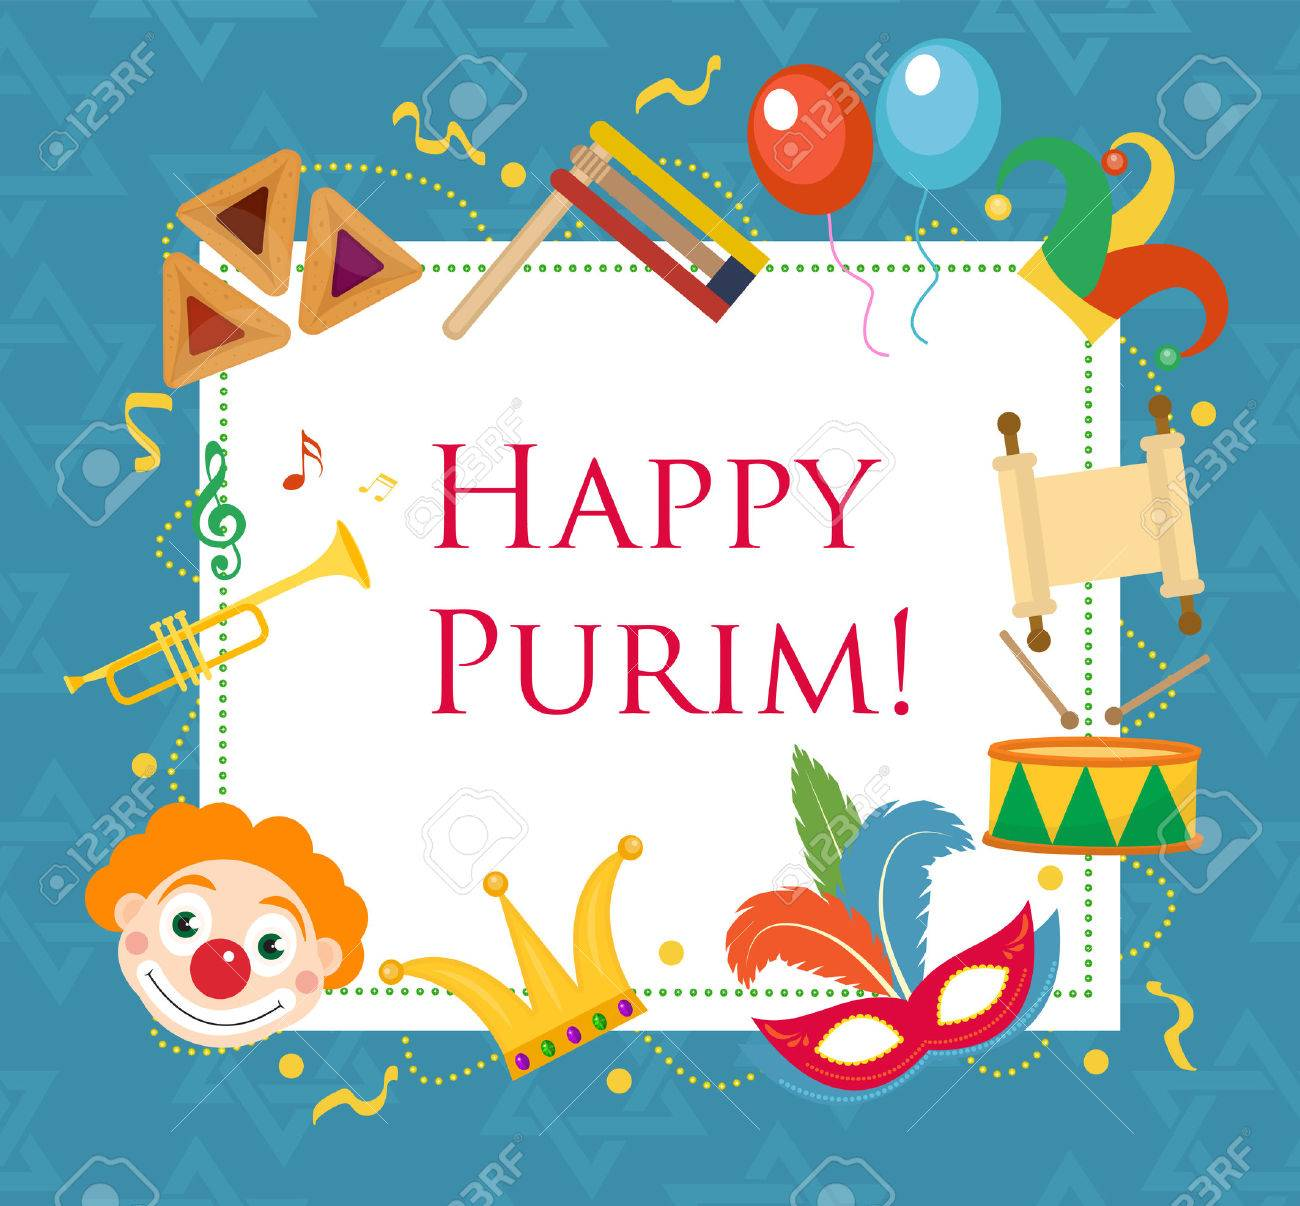 Jewish birthday stock photos royalty free business images happy purim template greeting card poster flyer frame for text purim kristyandbryce Images